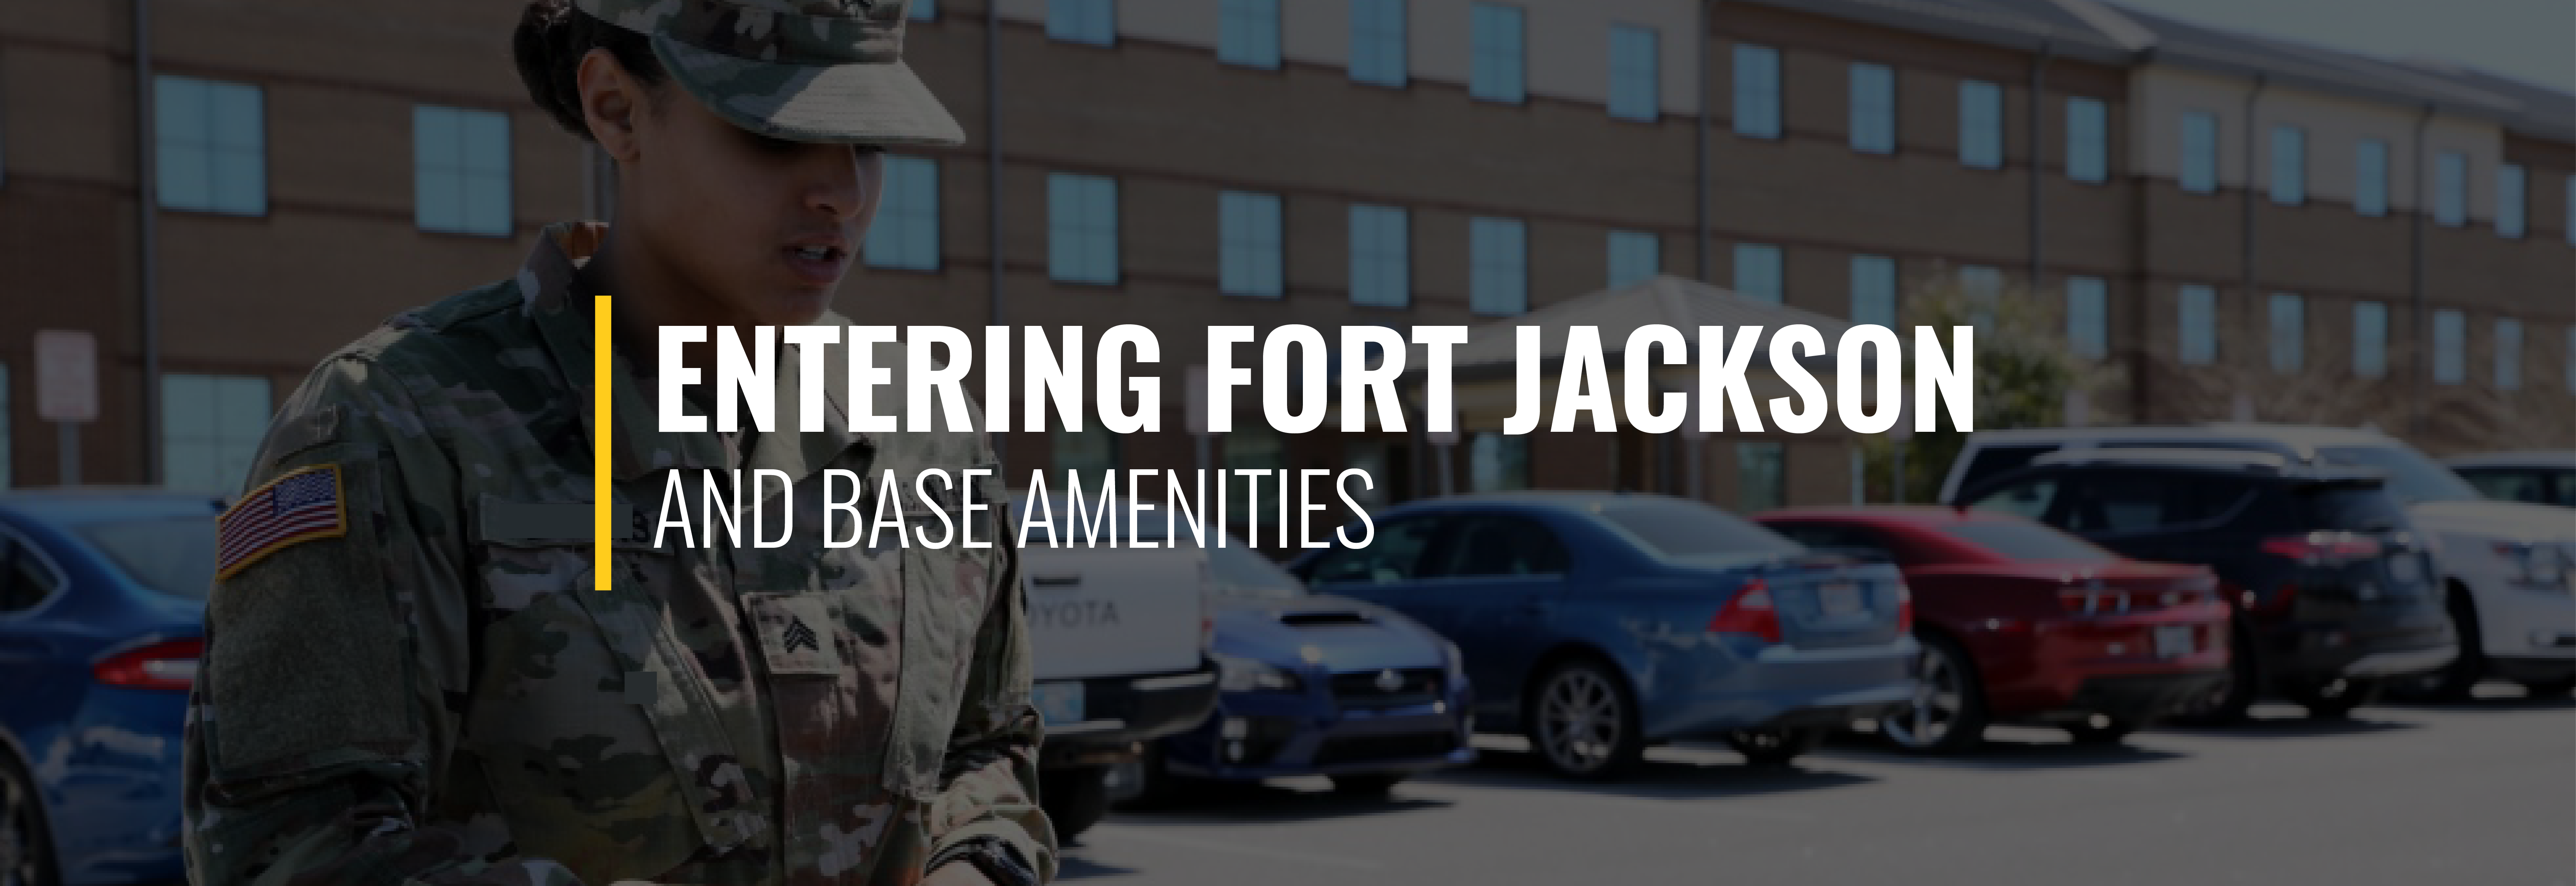 Entering Fort Jackson and Base Amenities